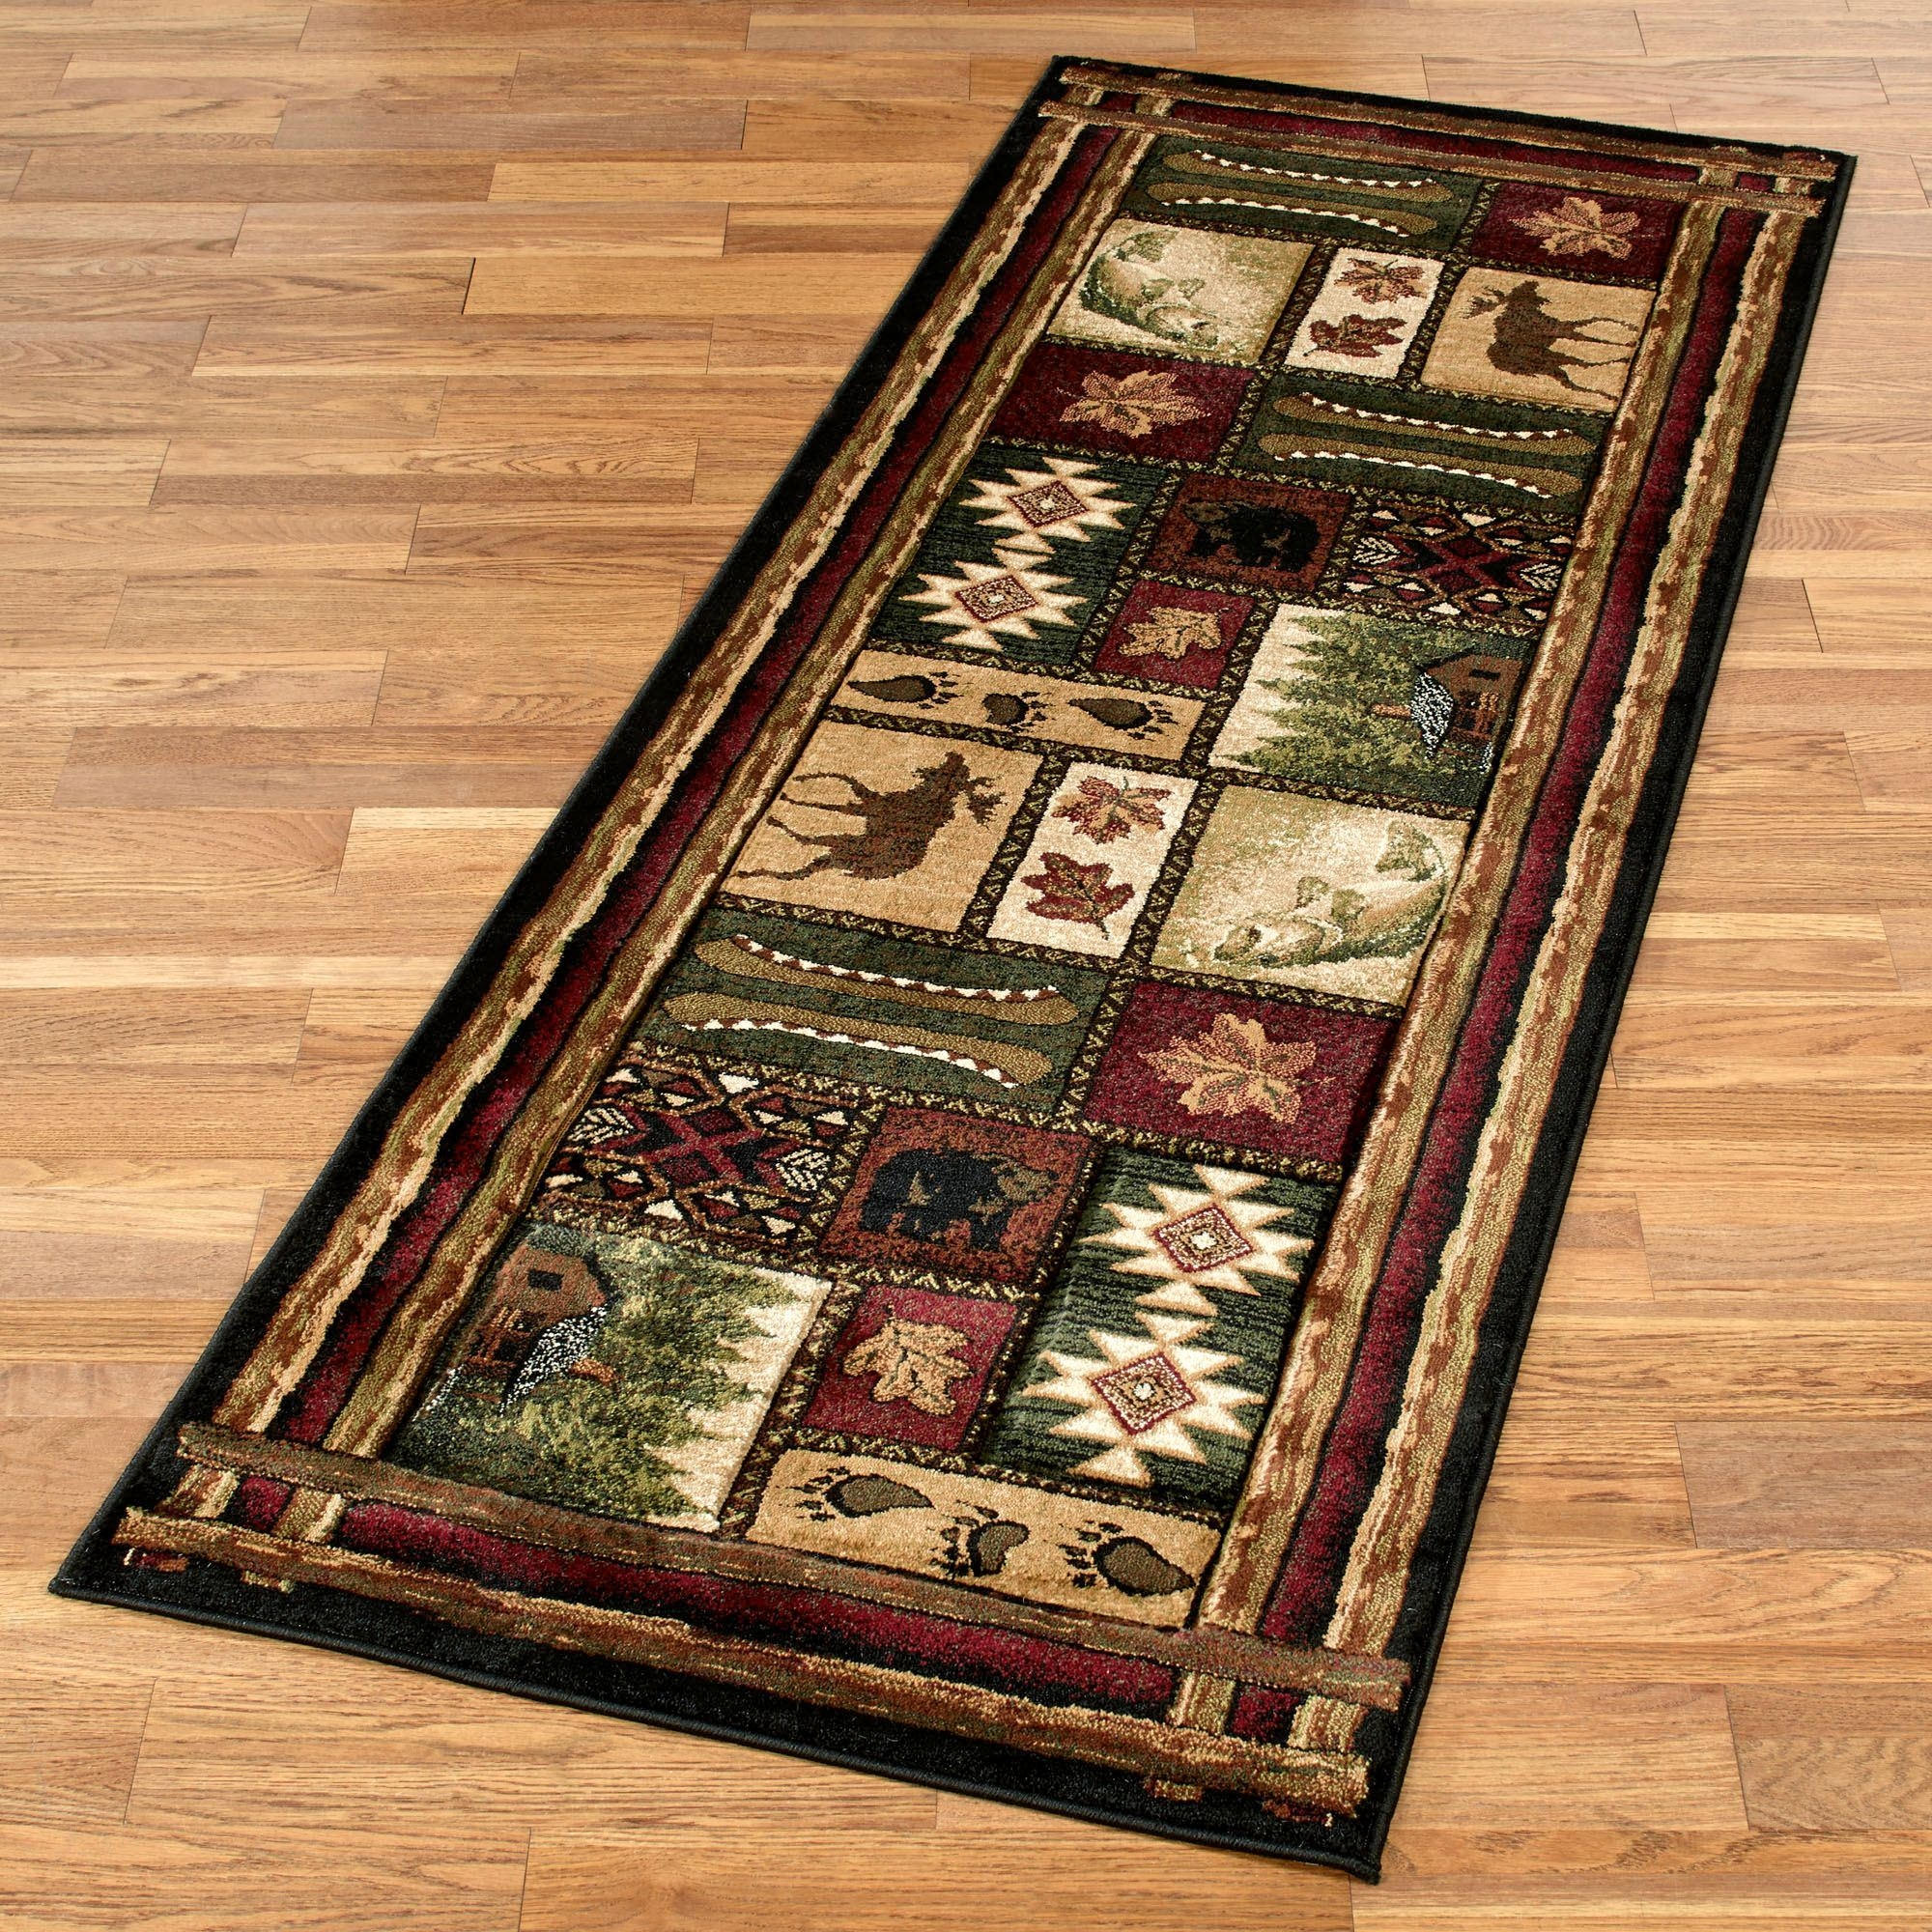 Cabin Chalet Rustic Rug Runner Within Runner Rugs For Hallway (#9 of 20)